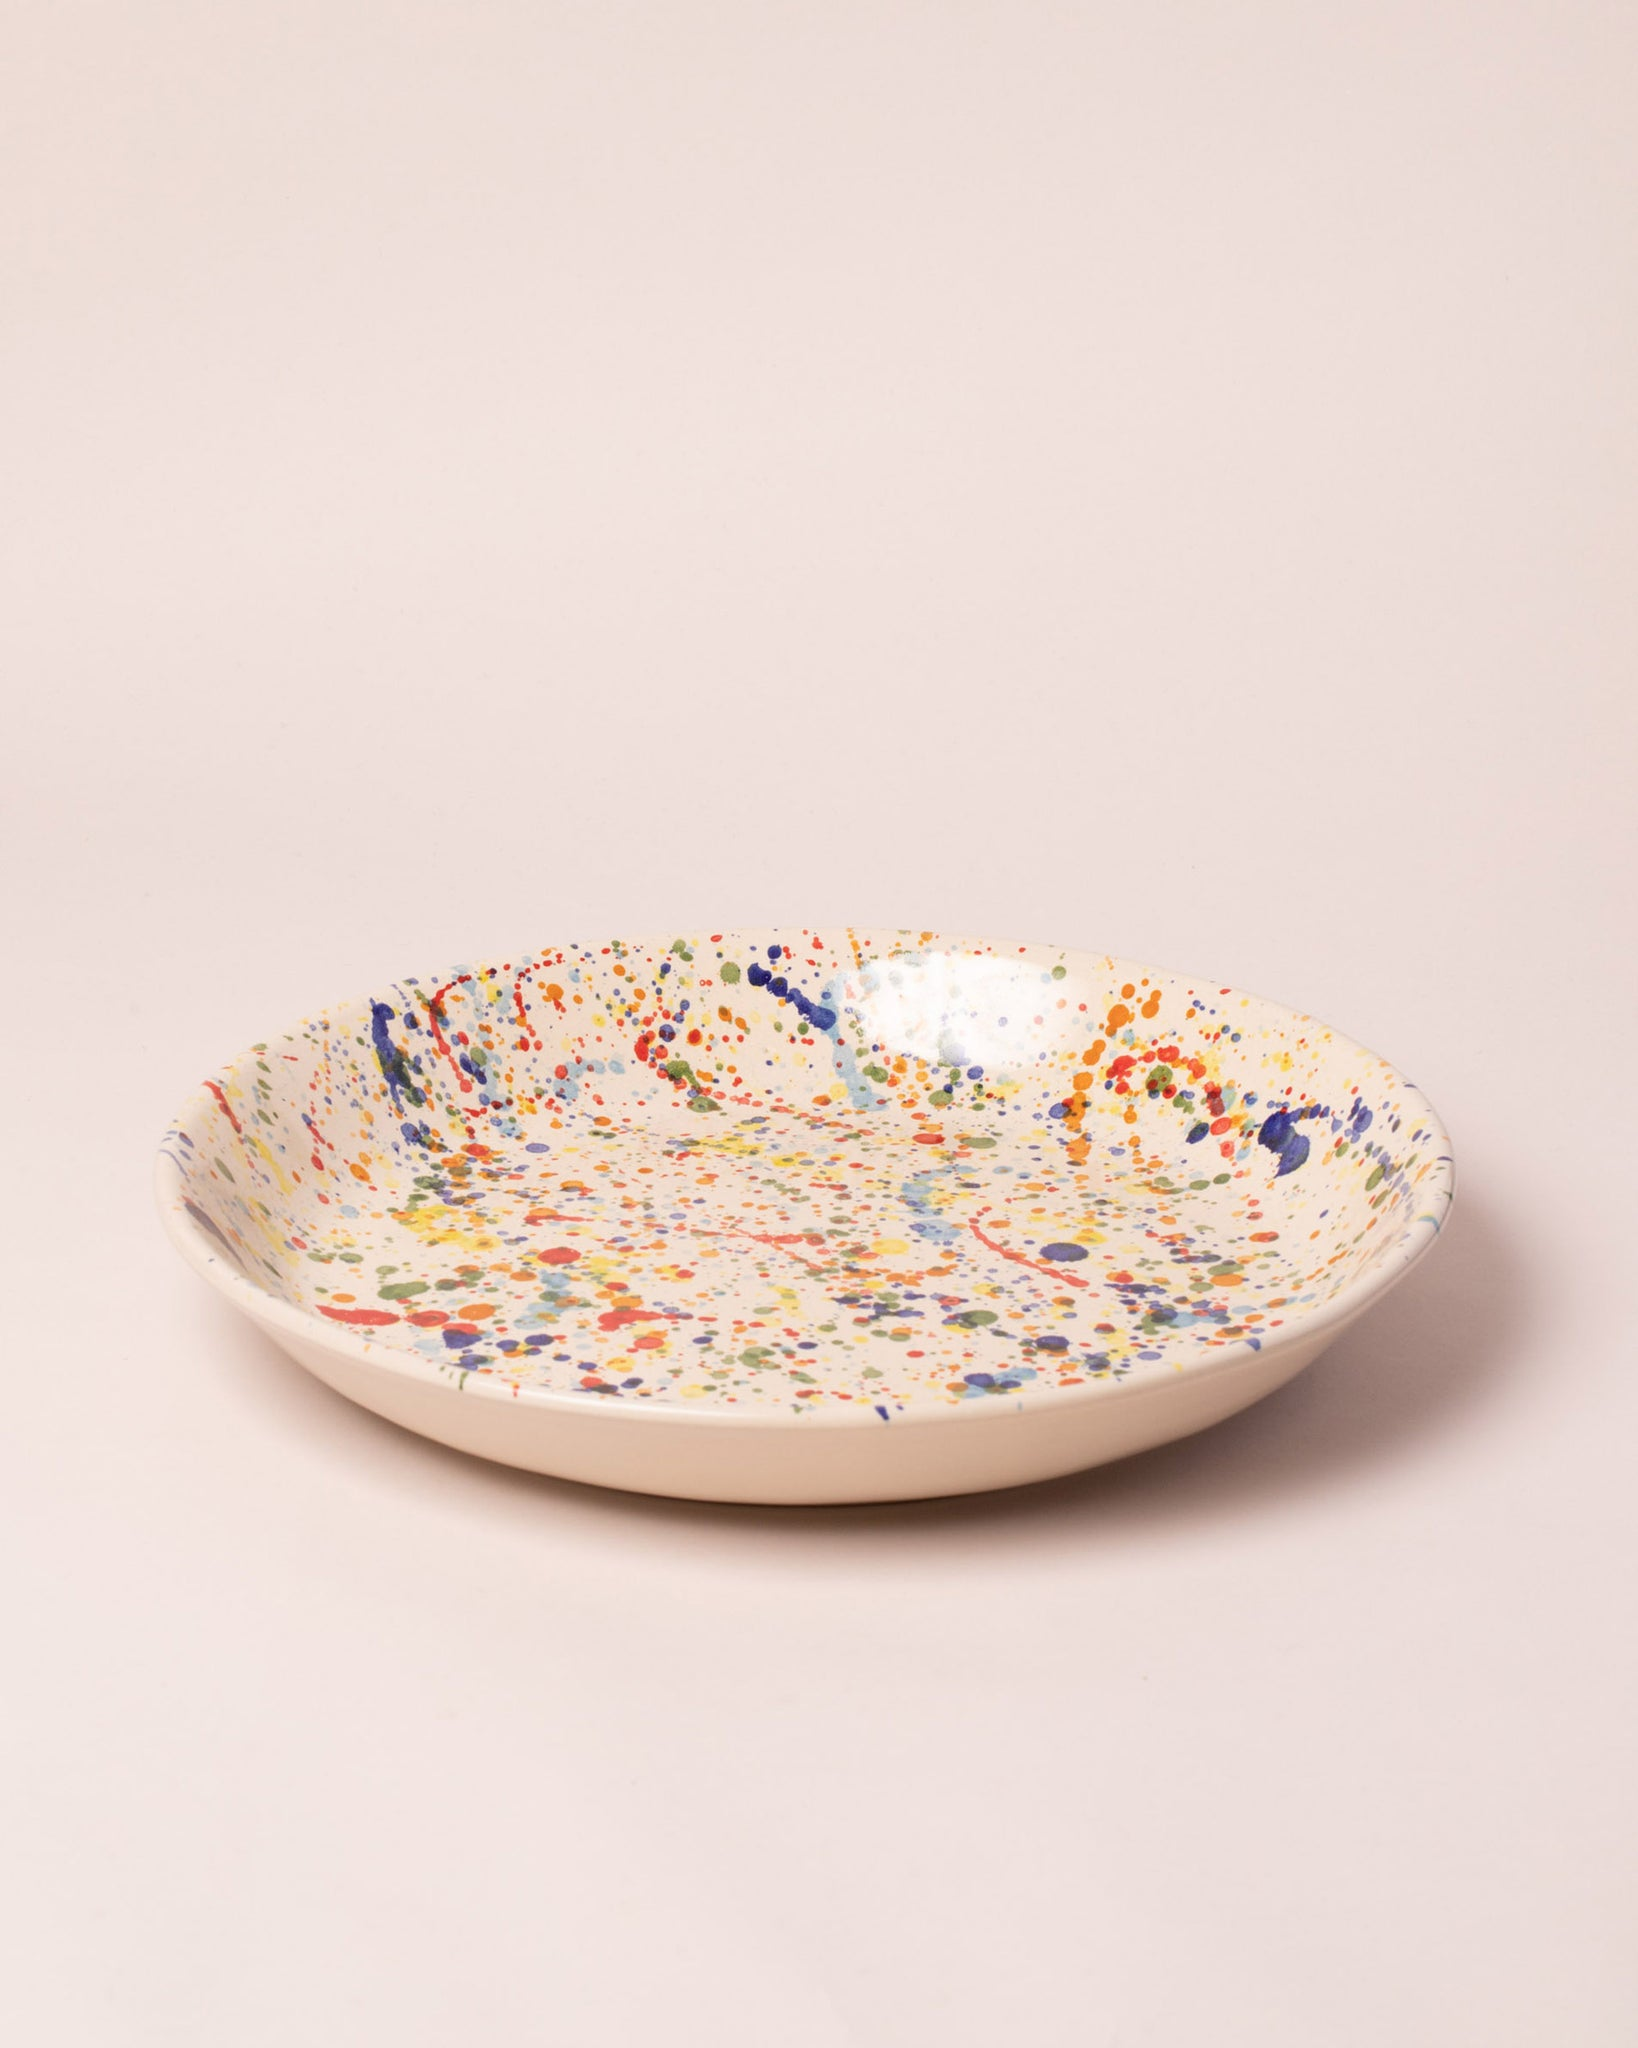 La Ceramica Circular Serving Dish Colored Drops